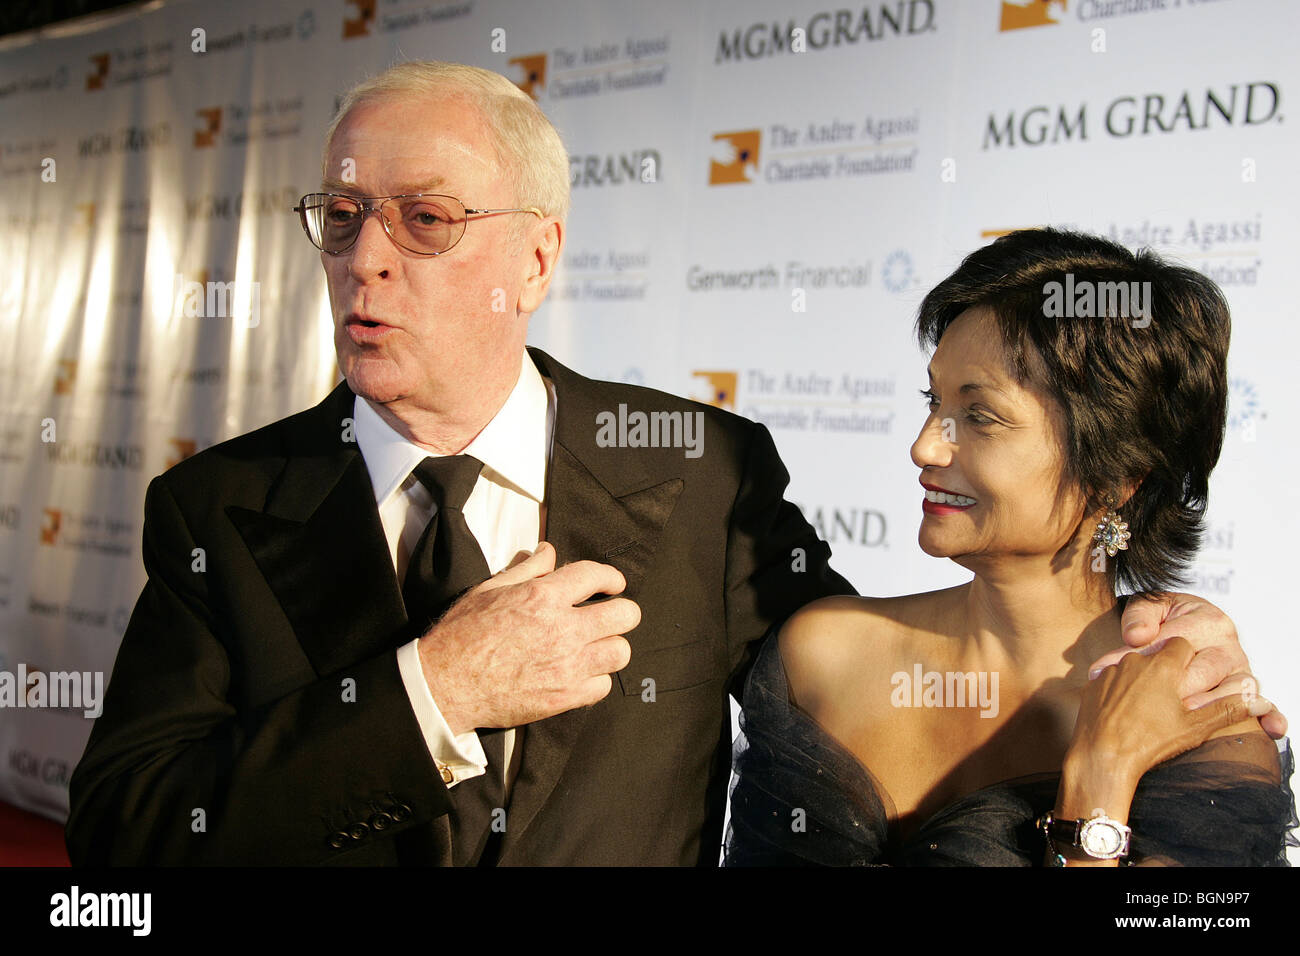 michael caine amp shakira caine 11th andre agassi grand slam